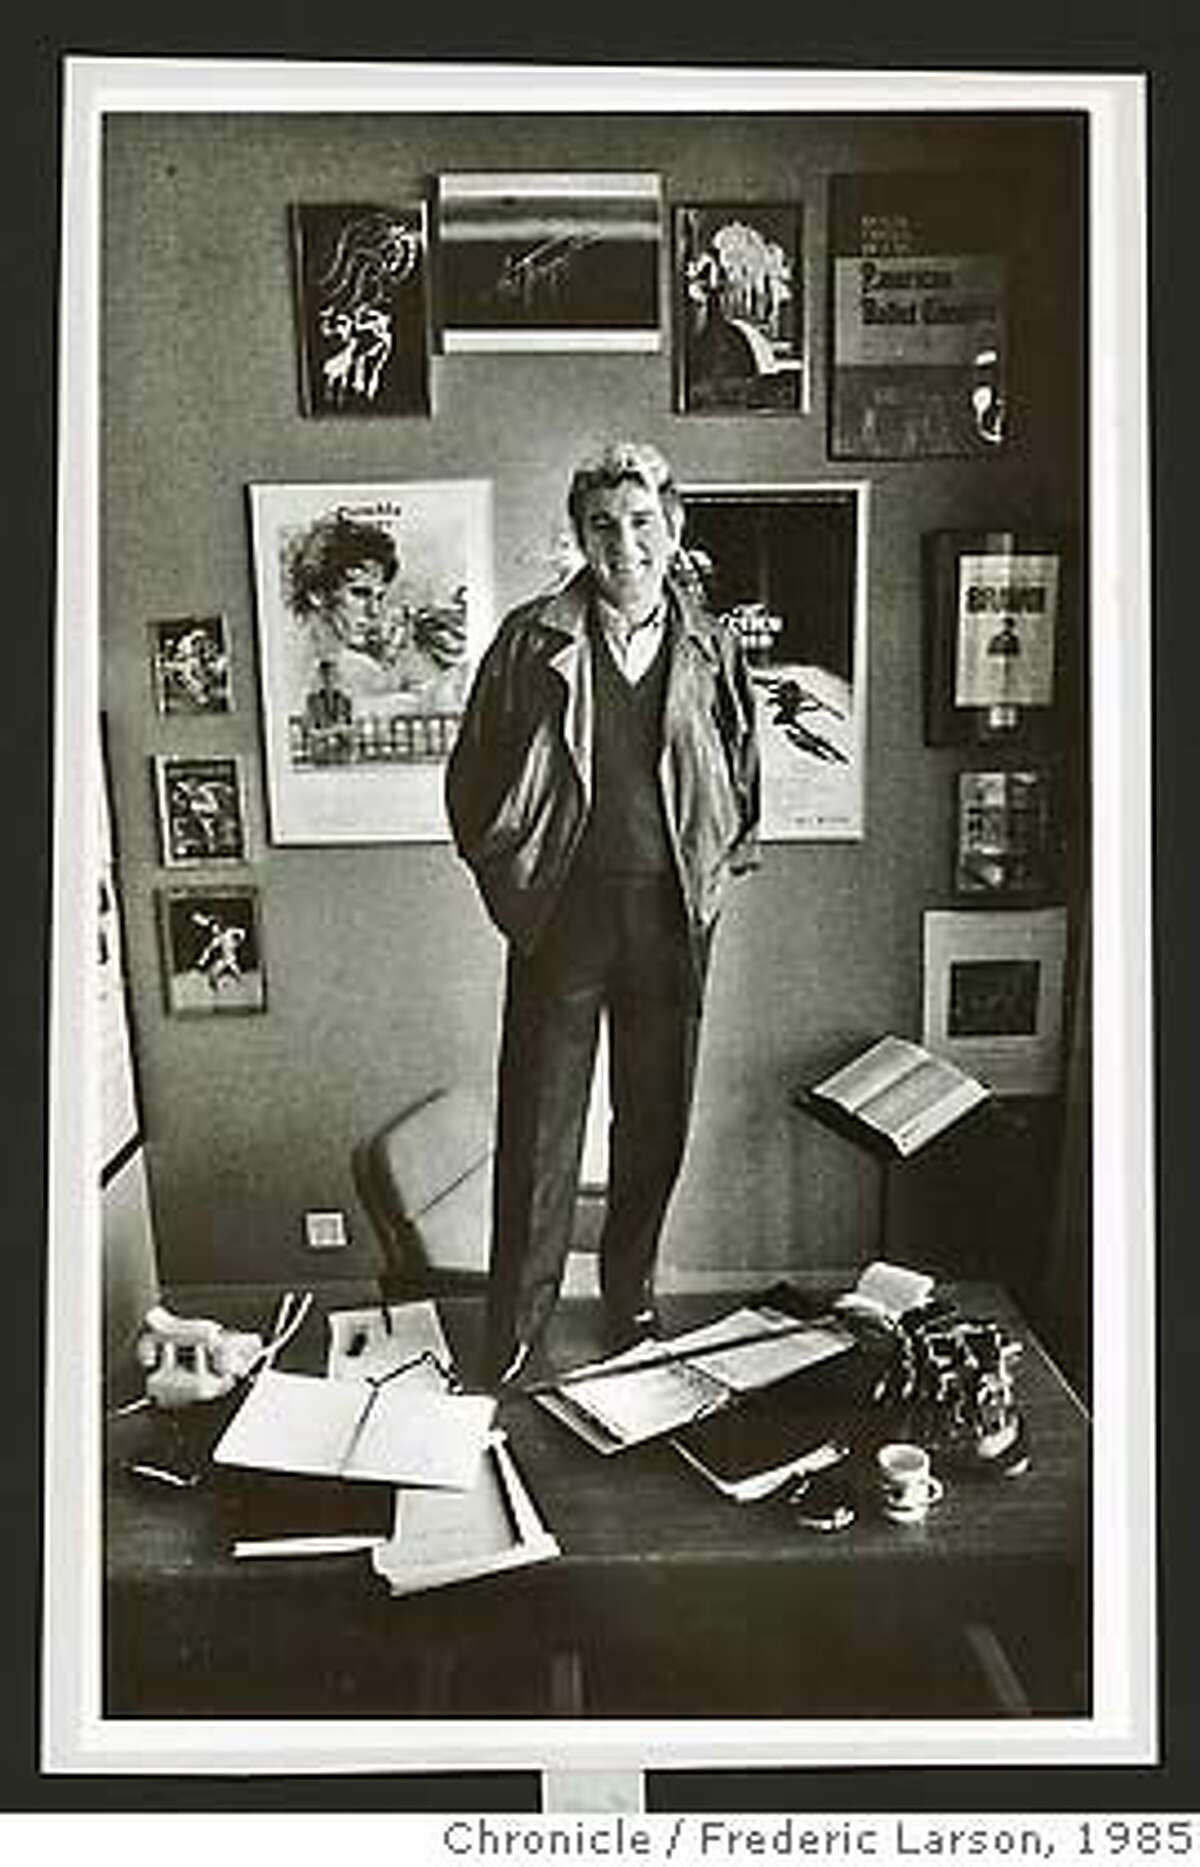 Michael Smuin, 1985 photo. FREDERIC LARSON/THE CHRONICLE 1985